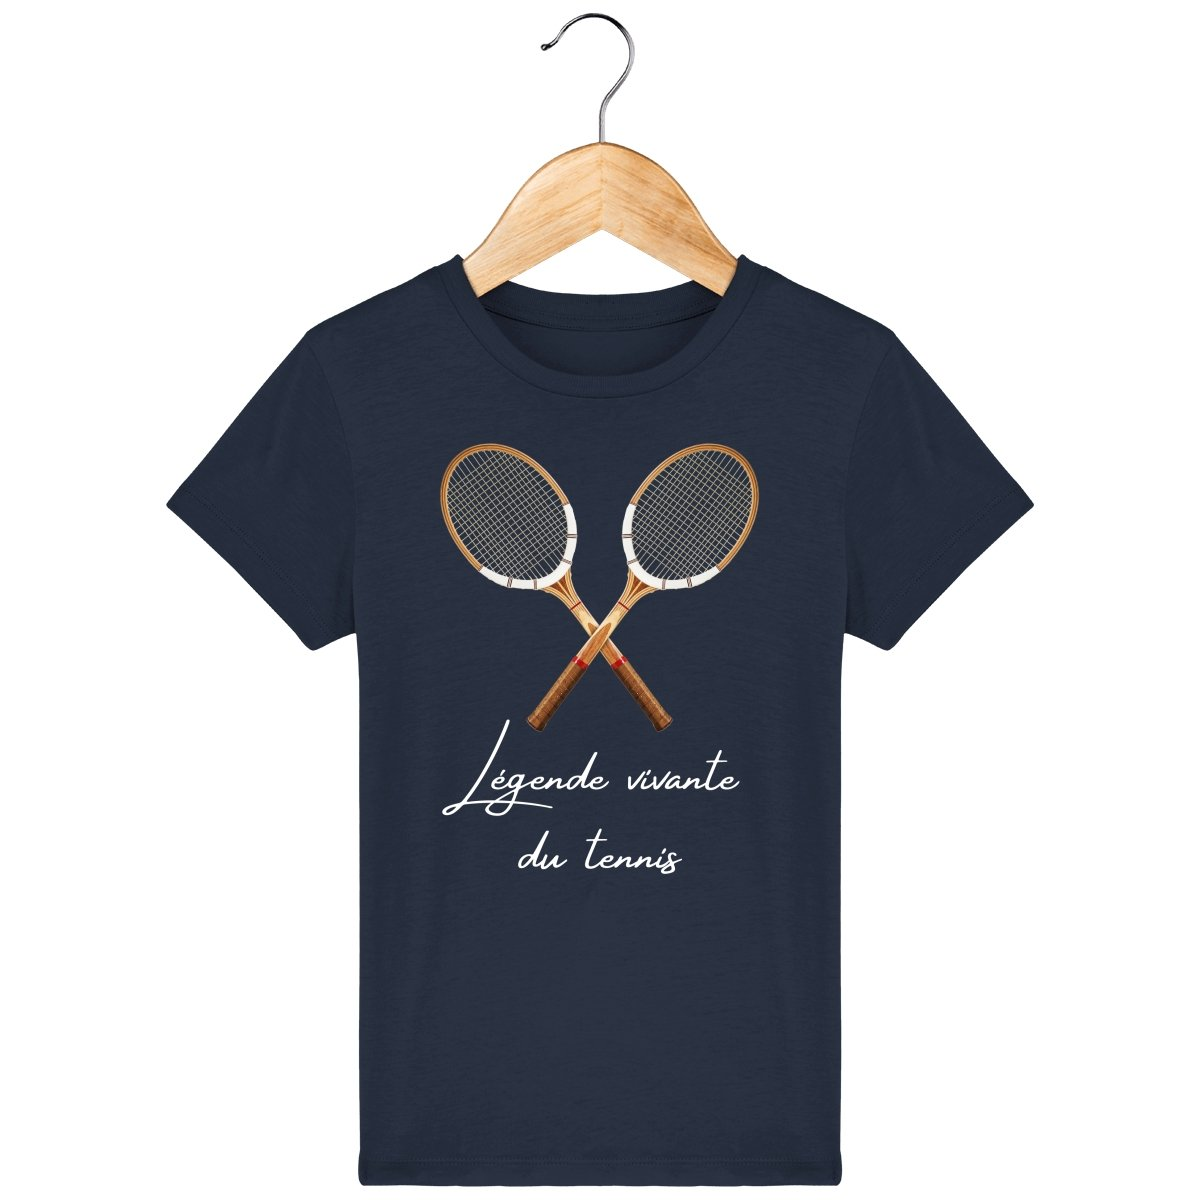 "T-shirt garçon *100% coton bio* ""Légende vivante du tennis"" - Jeu Set Match-tennis"